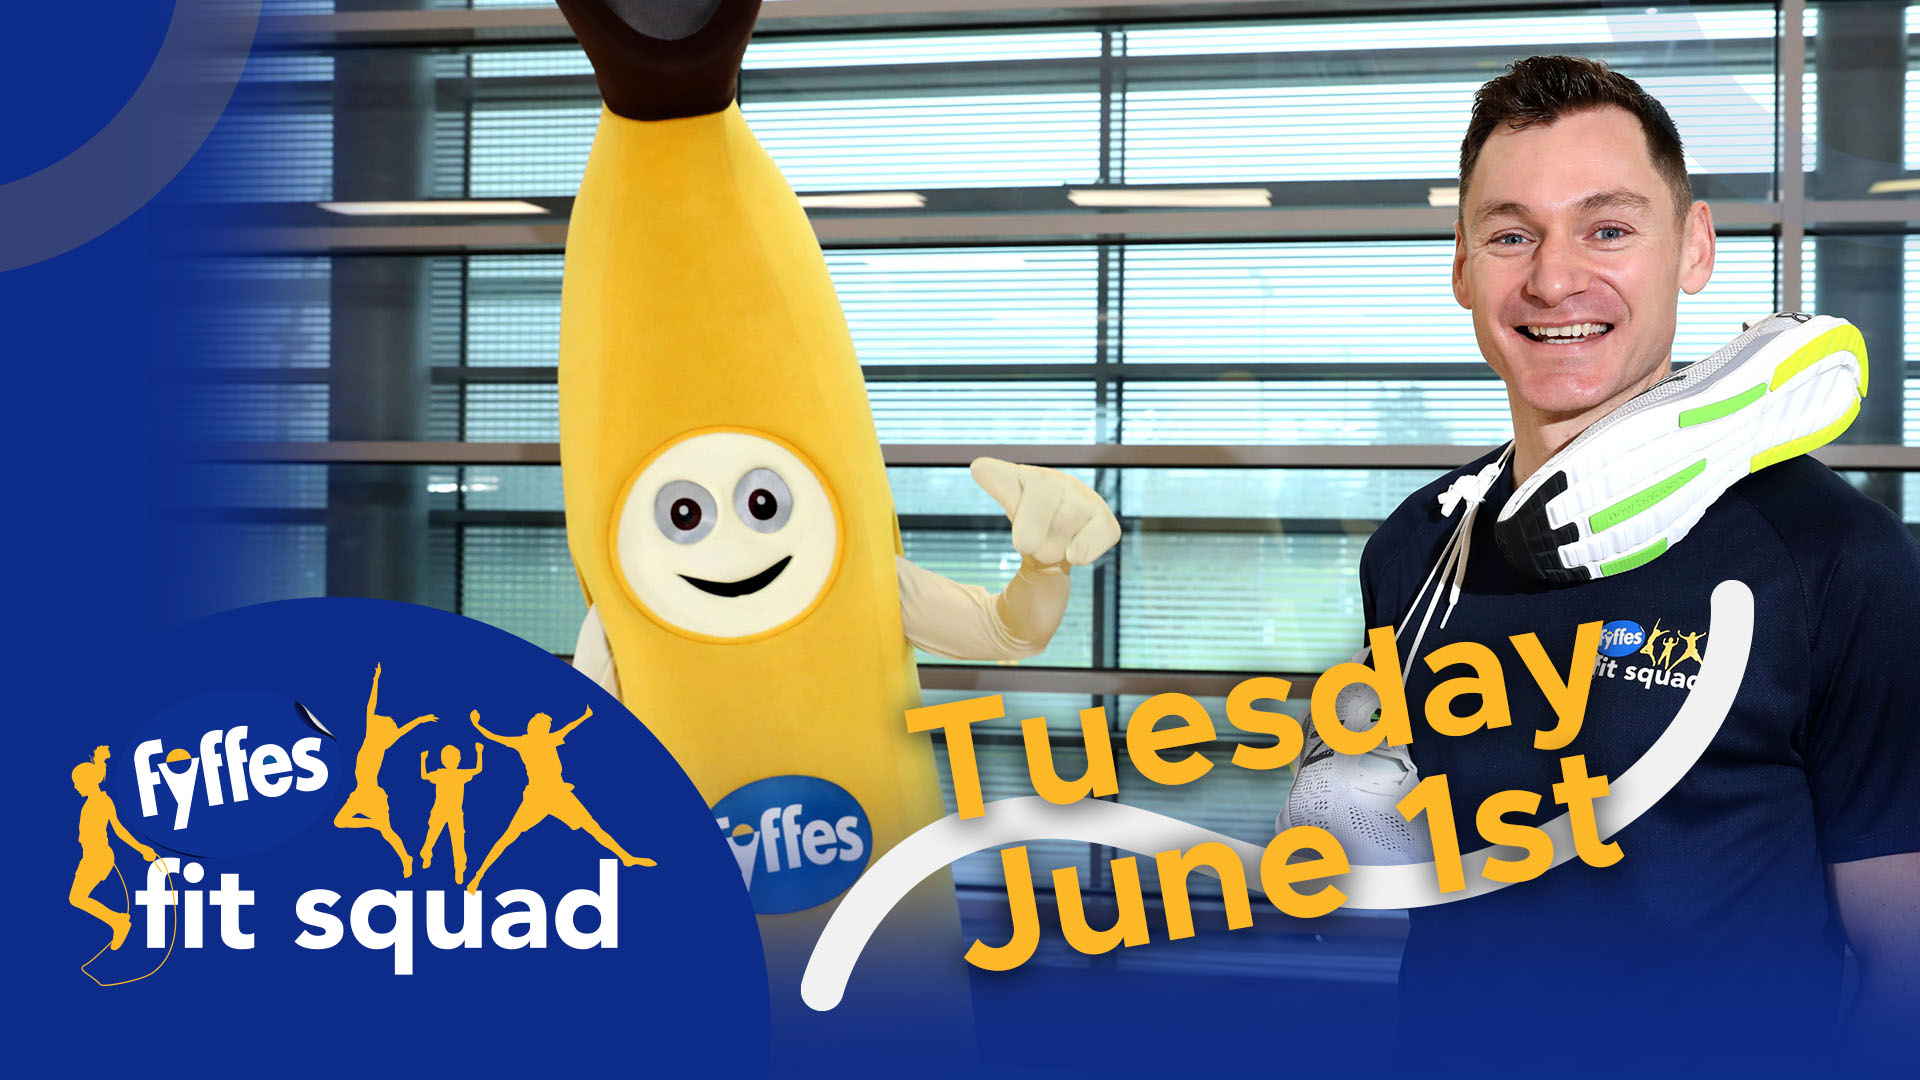 Fyffes Fit Squad Week 11 | Tuesday, June 1st 2021